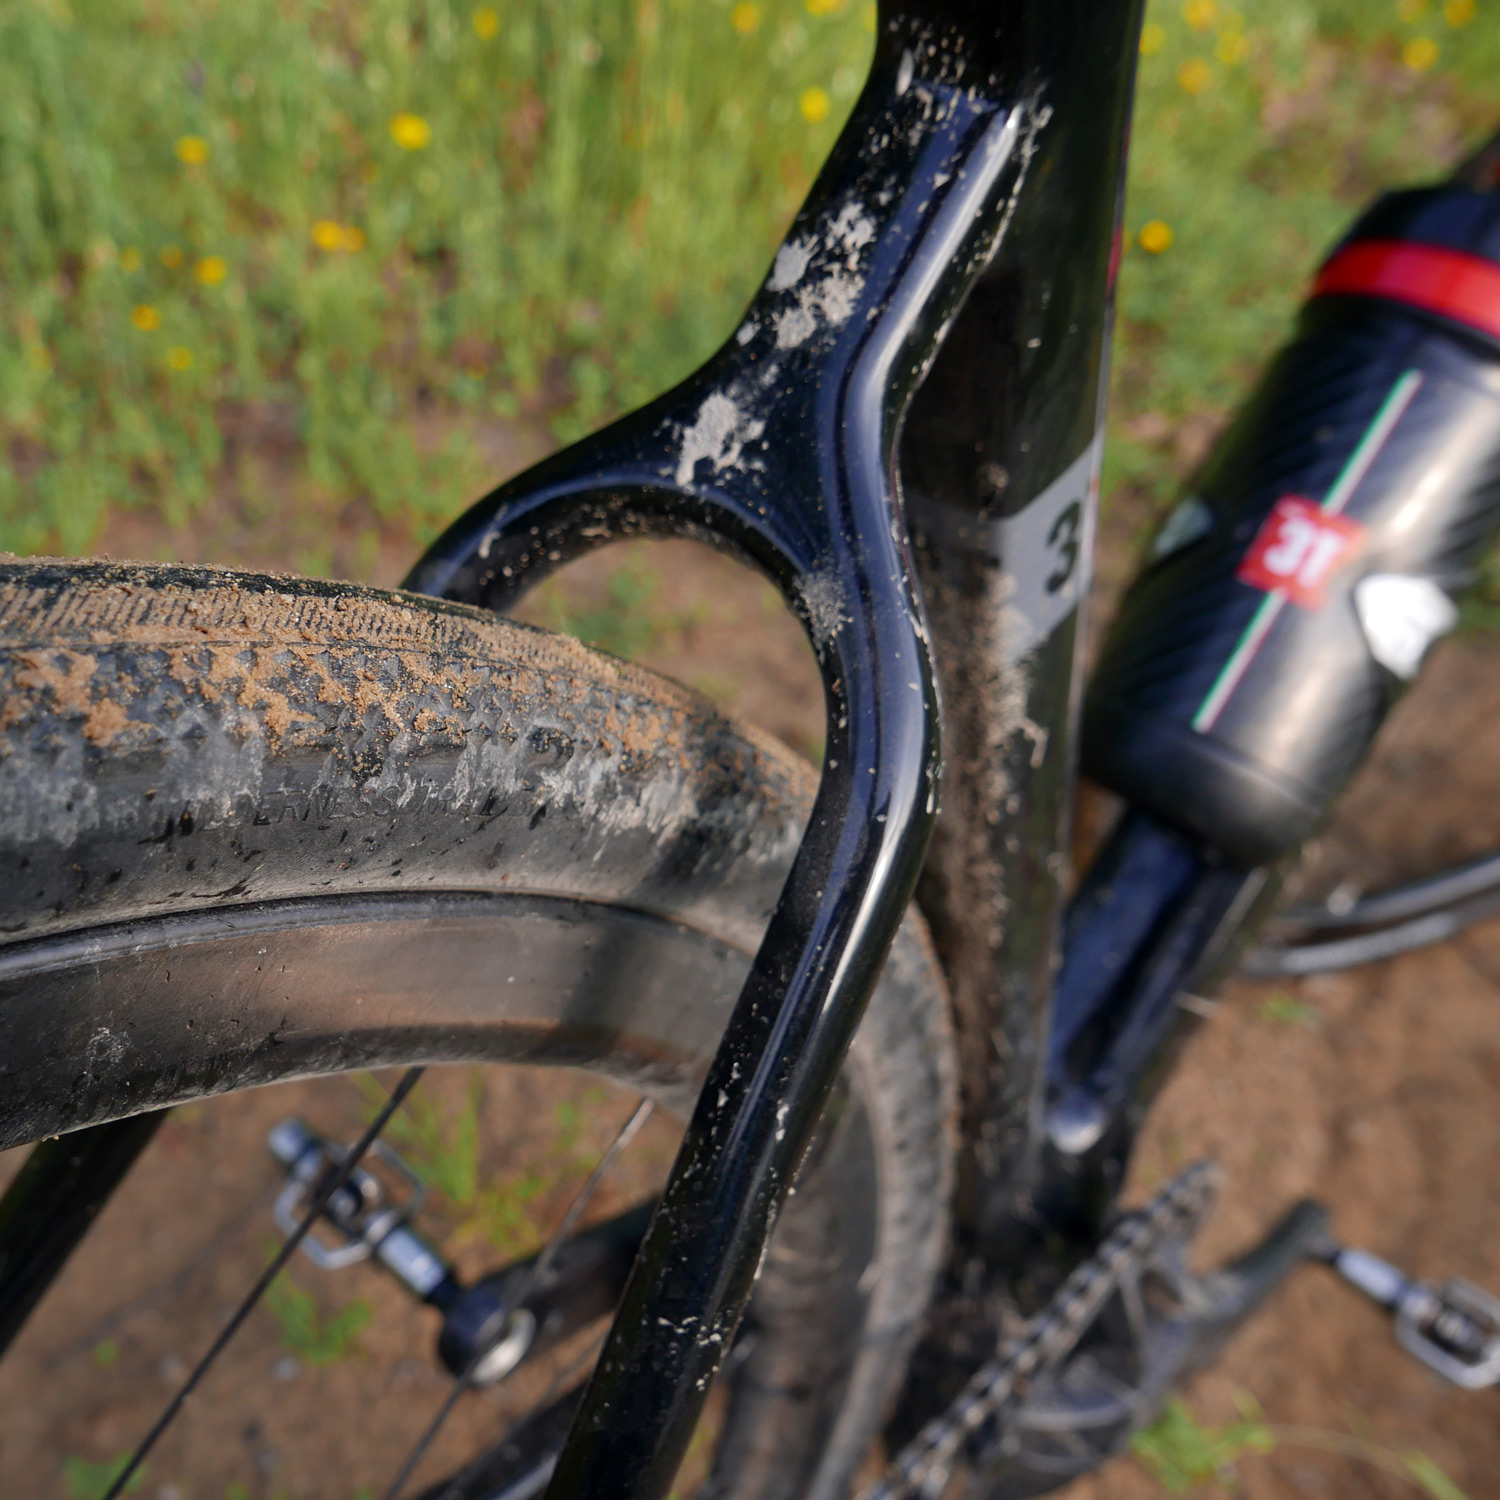 3T hits the gravel+ with all new multi-surface Exploro carbon frame, and 650b+ wheels - First ...